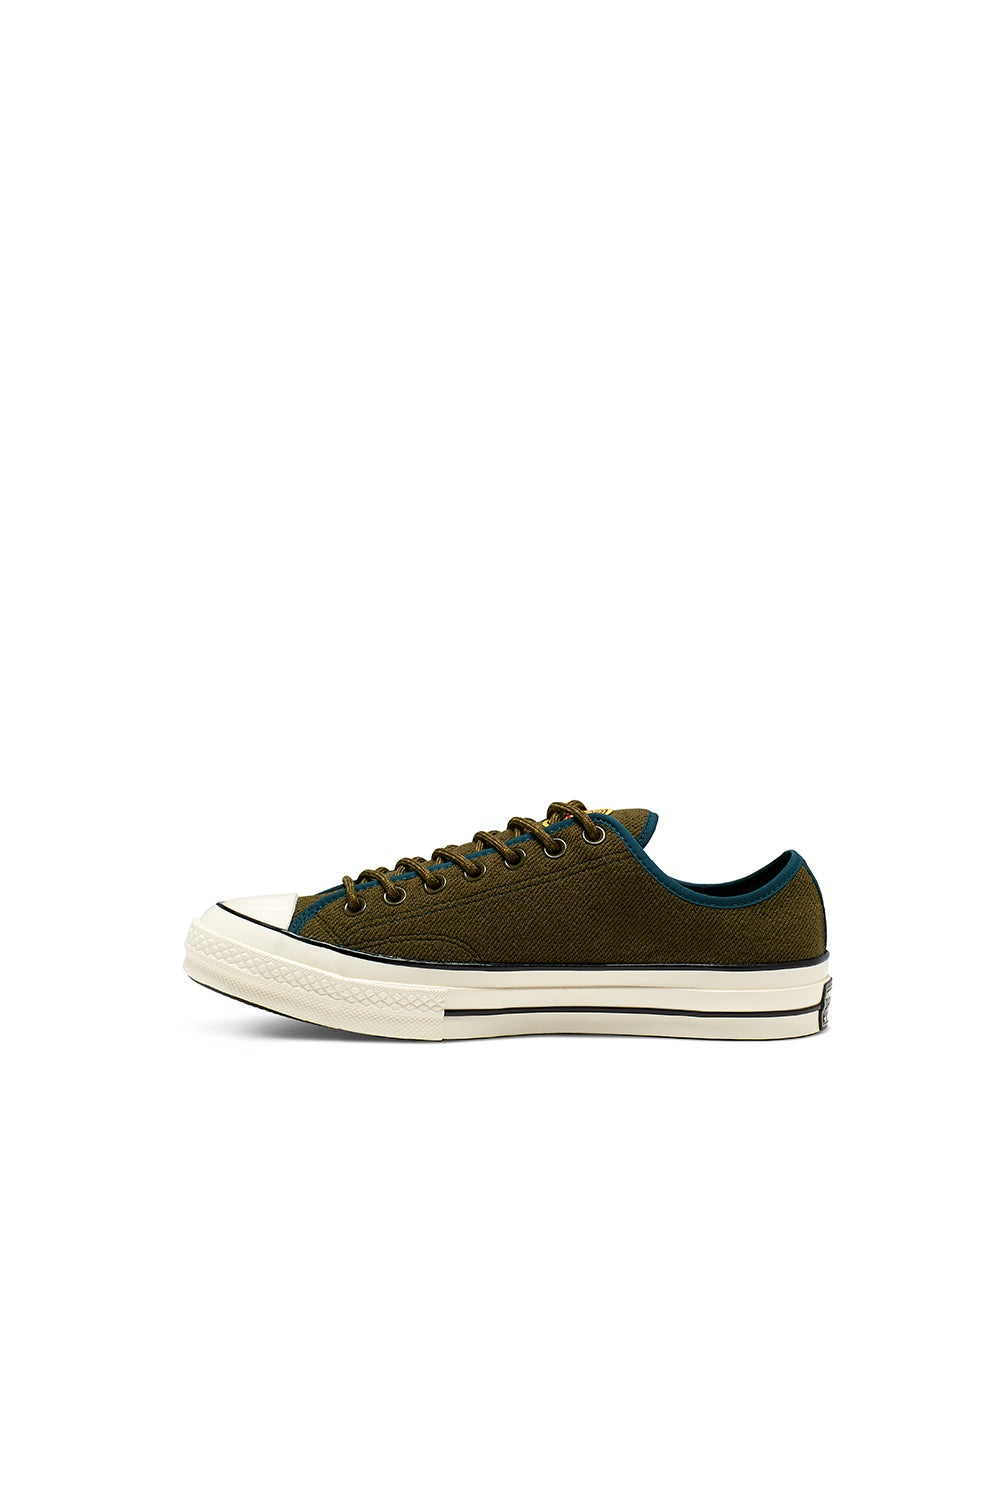 Converse Chuck Taylor 70 Low Archival Terry Surplus Olive/Midnight Turq/Egret